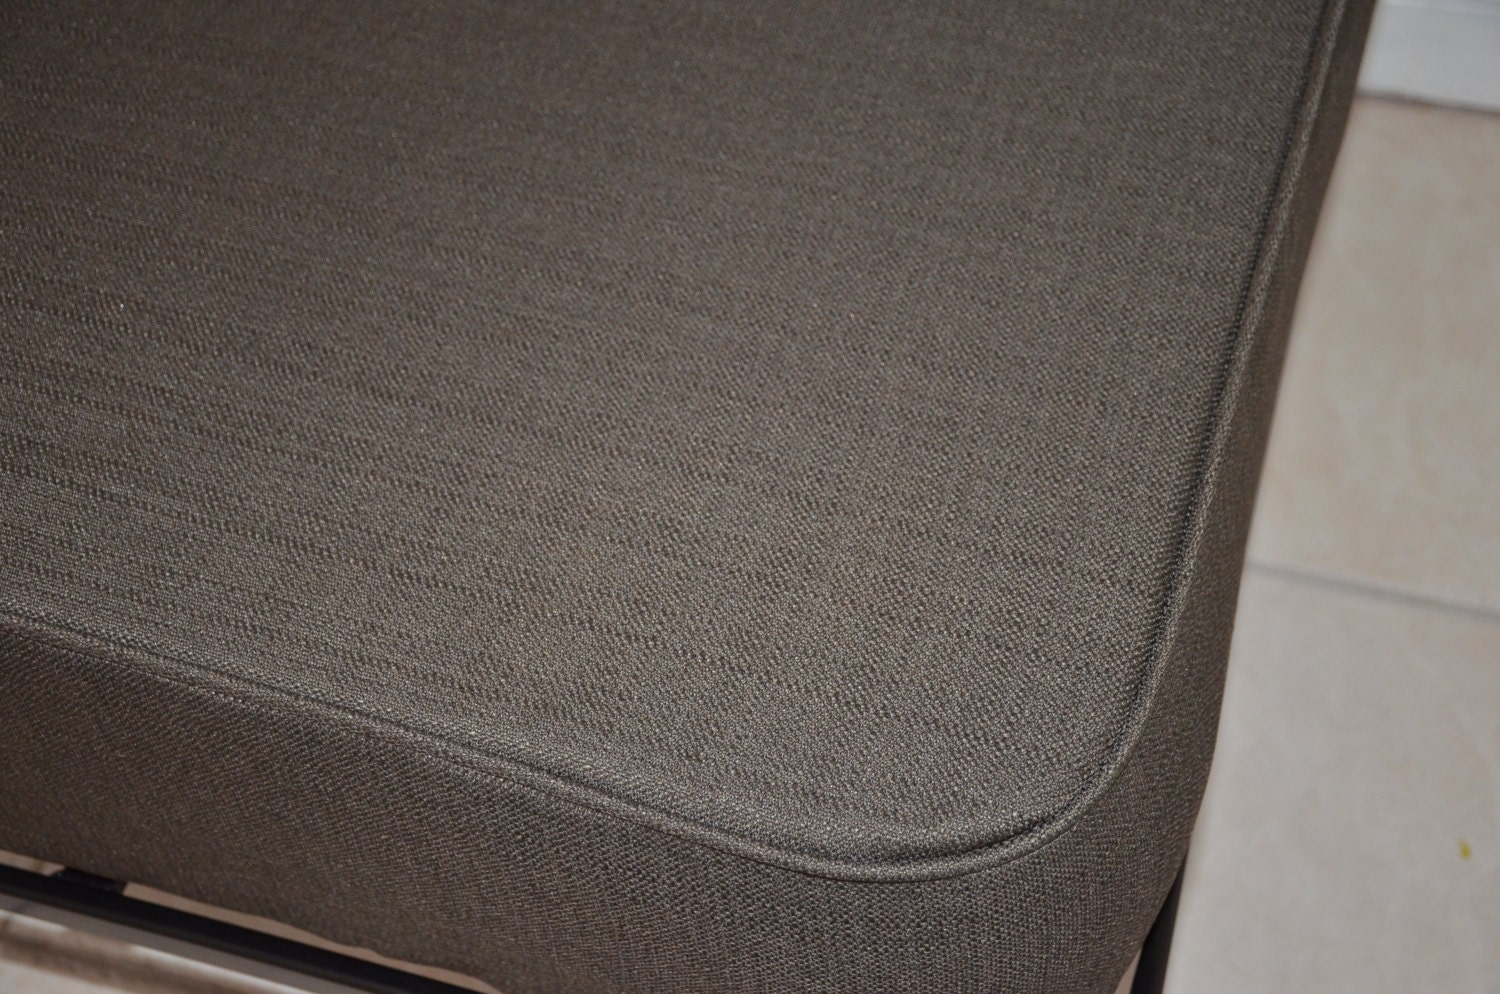 Daybed Matching Tailored Fitted Cover Twin Xl Linen Graphite